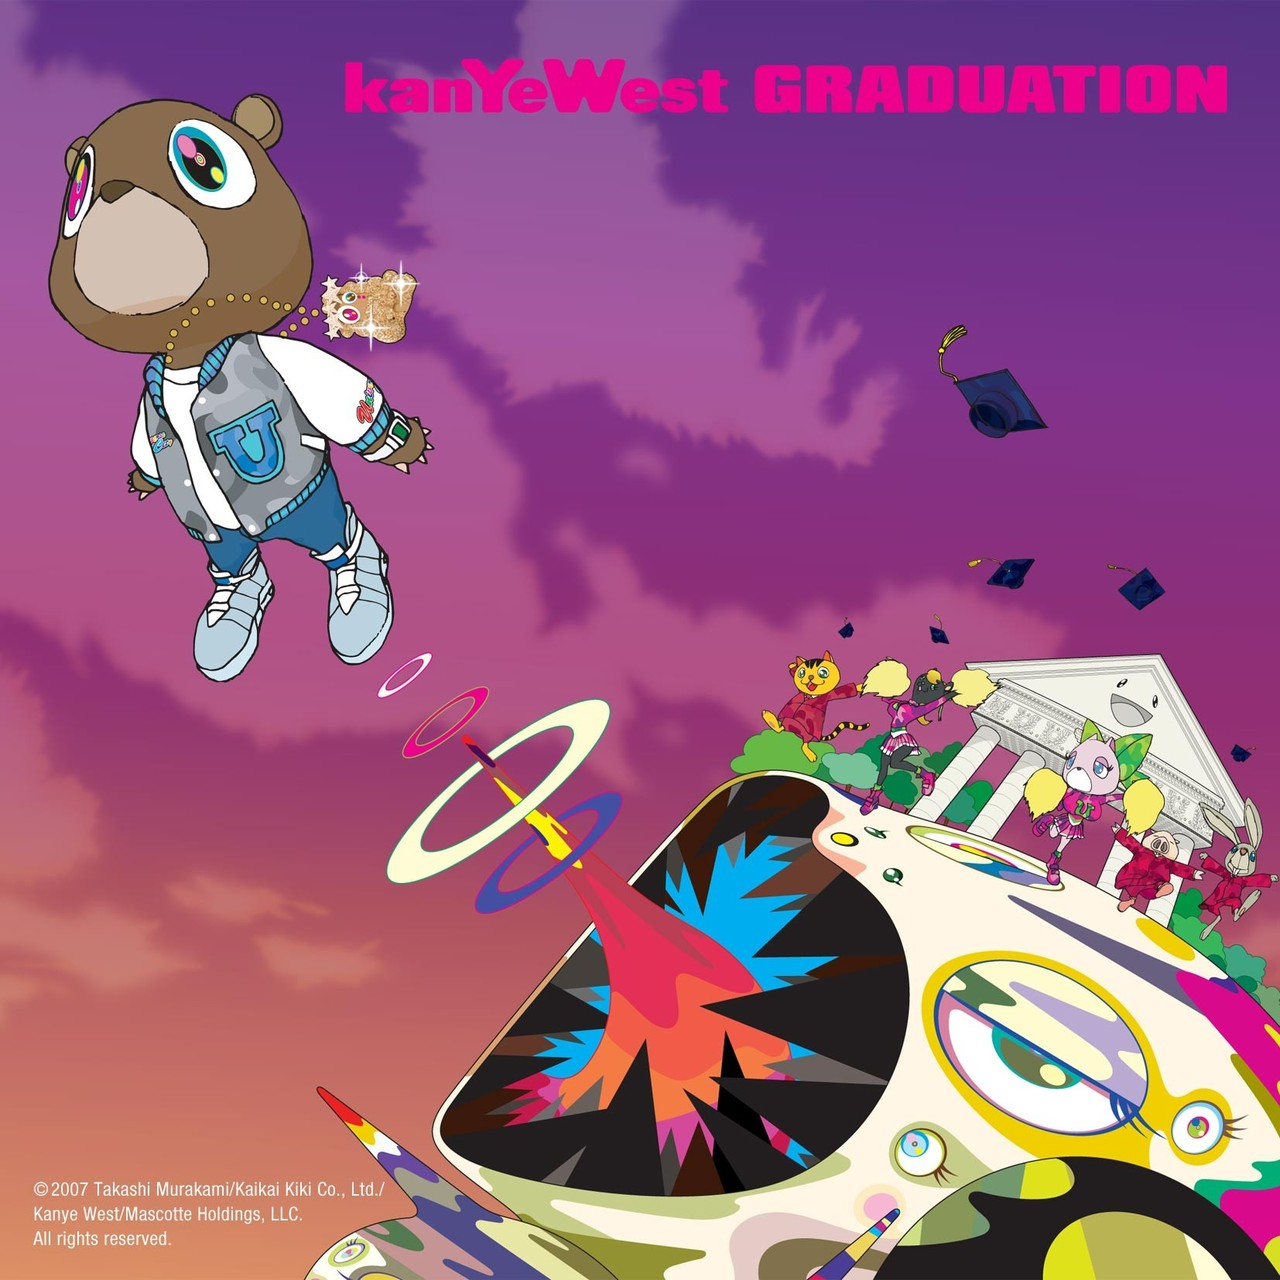 upnorthtrips: On this day in 2007, Kanye West released his third album, Graduation.